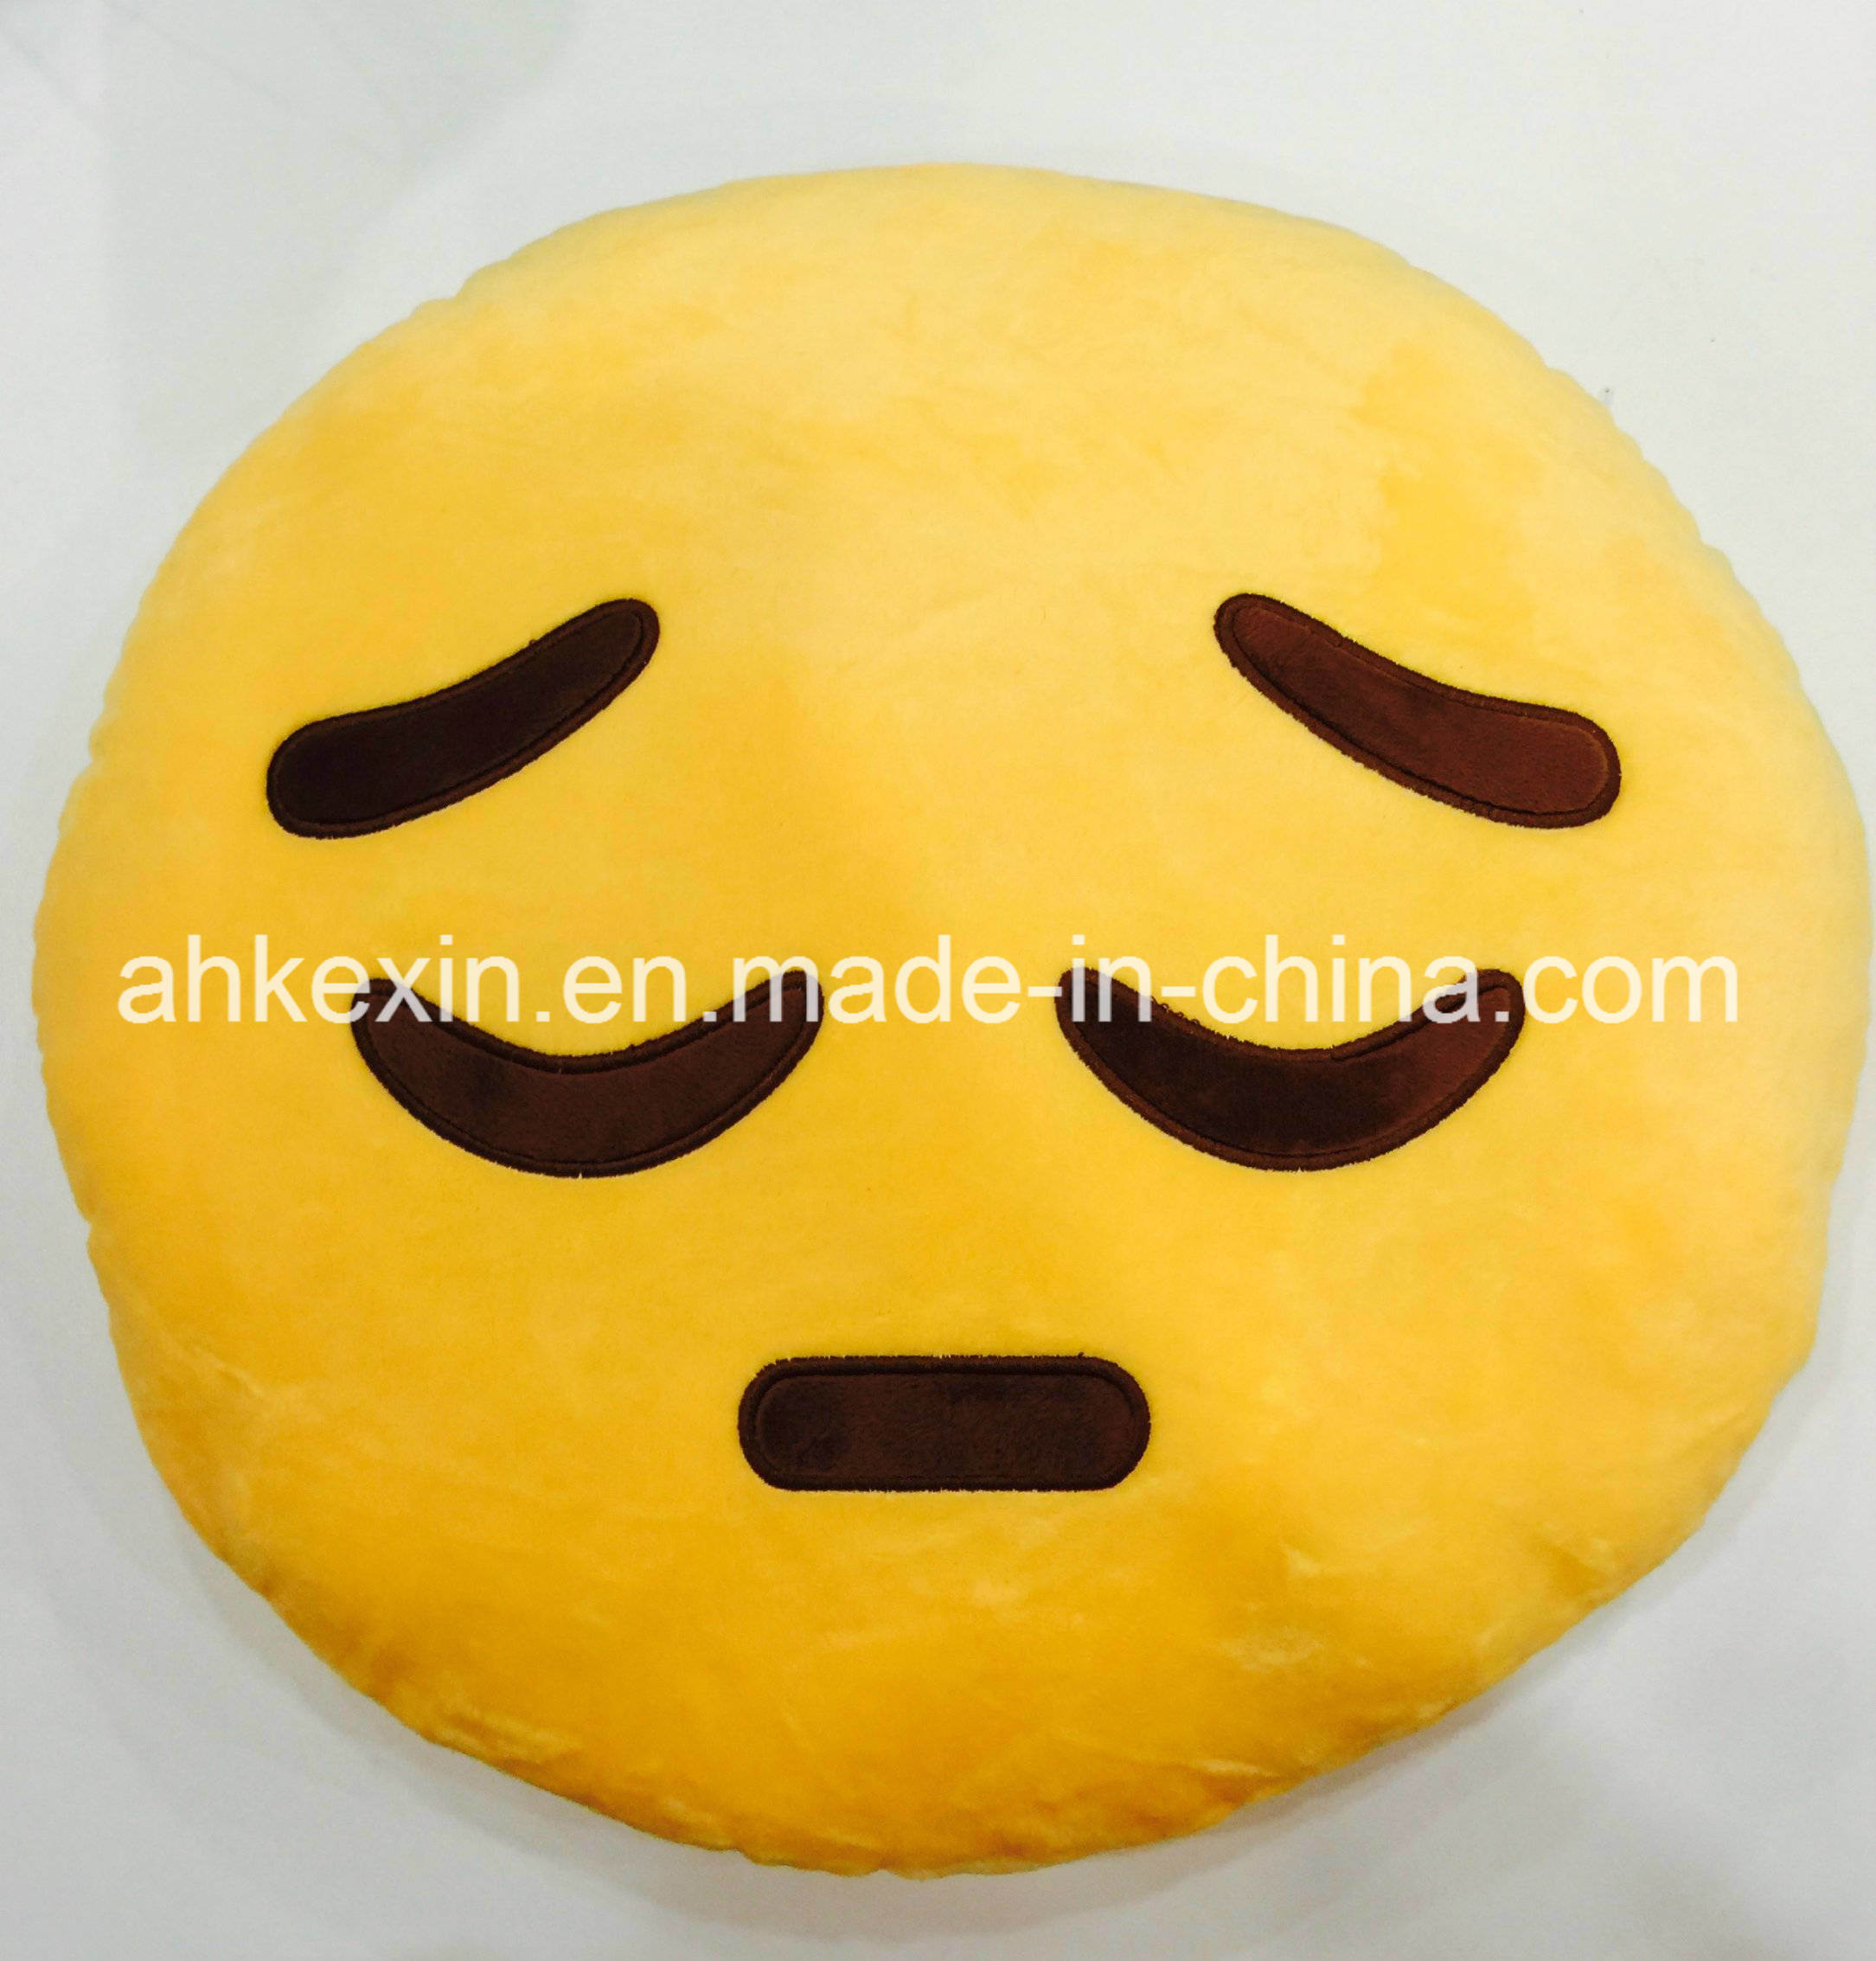 Yellow Soft Kids Emotion Plush Toy Emoji Pillow